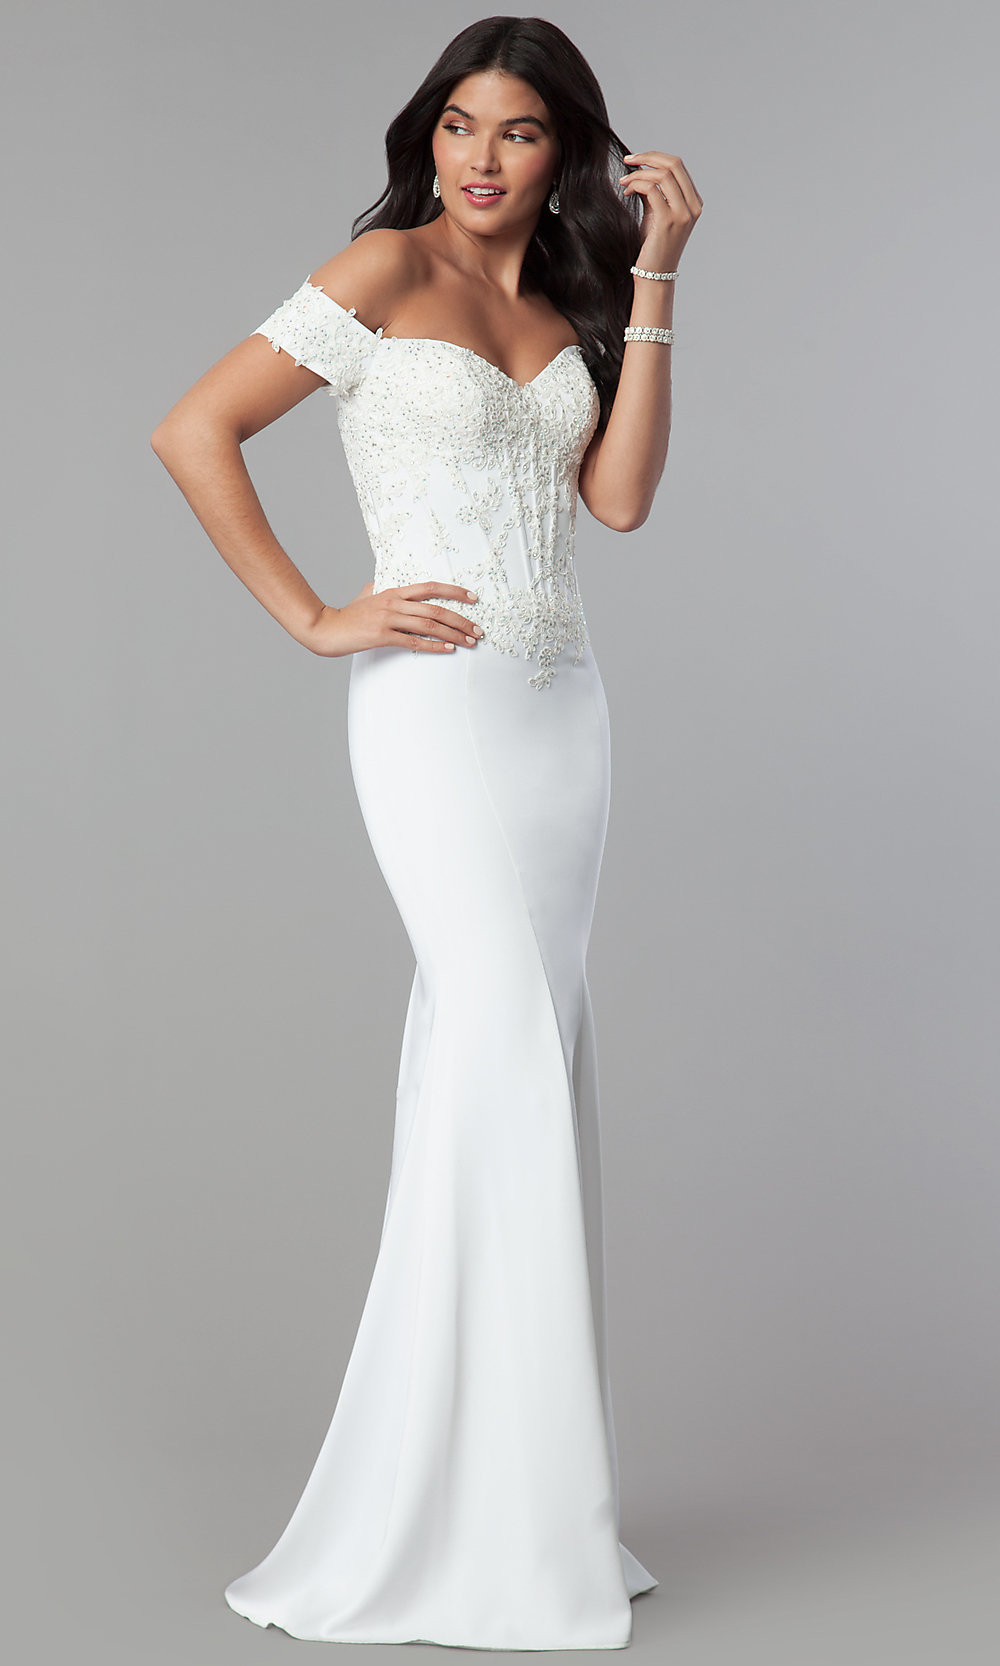 Off-Shoulder Accented-Bodice Prom Dress - PromGirl